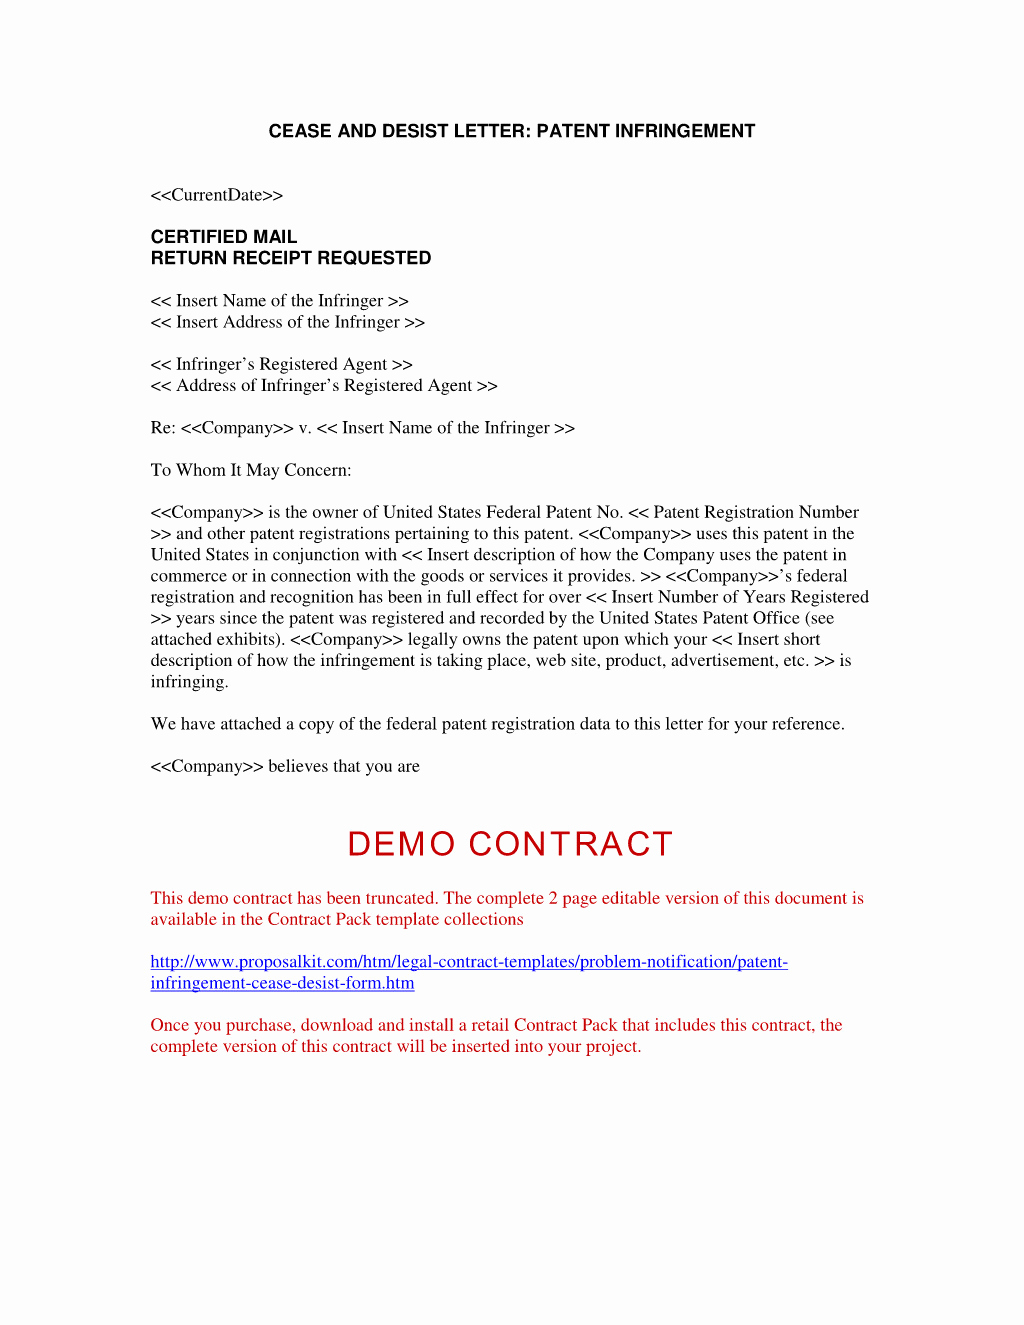 Free Cease and Desist Letter New Cease and Desist Letter Patent Infringement Template